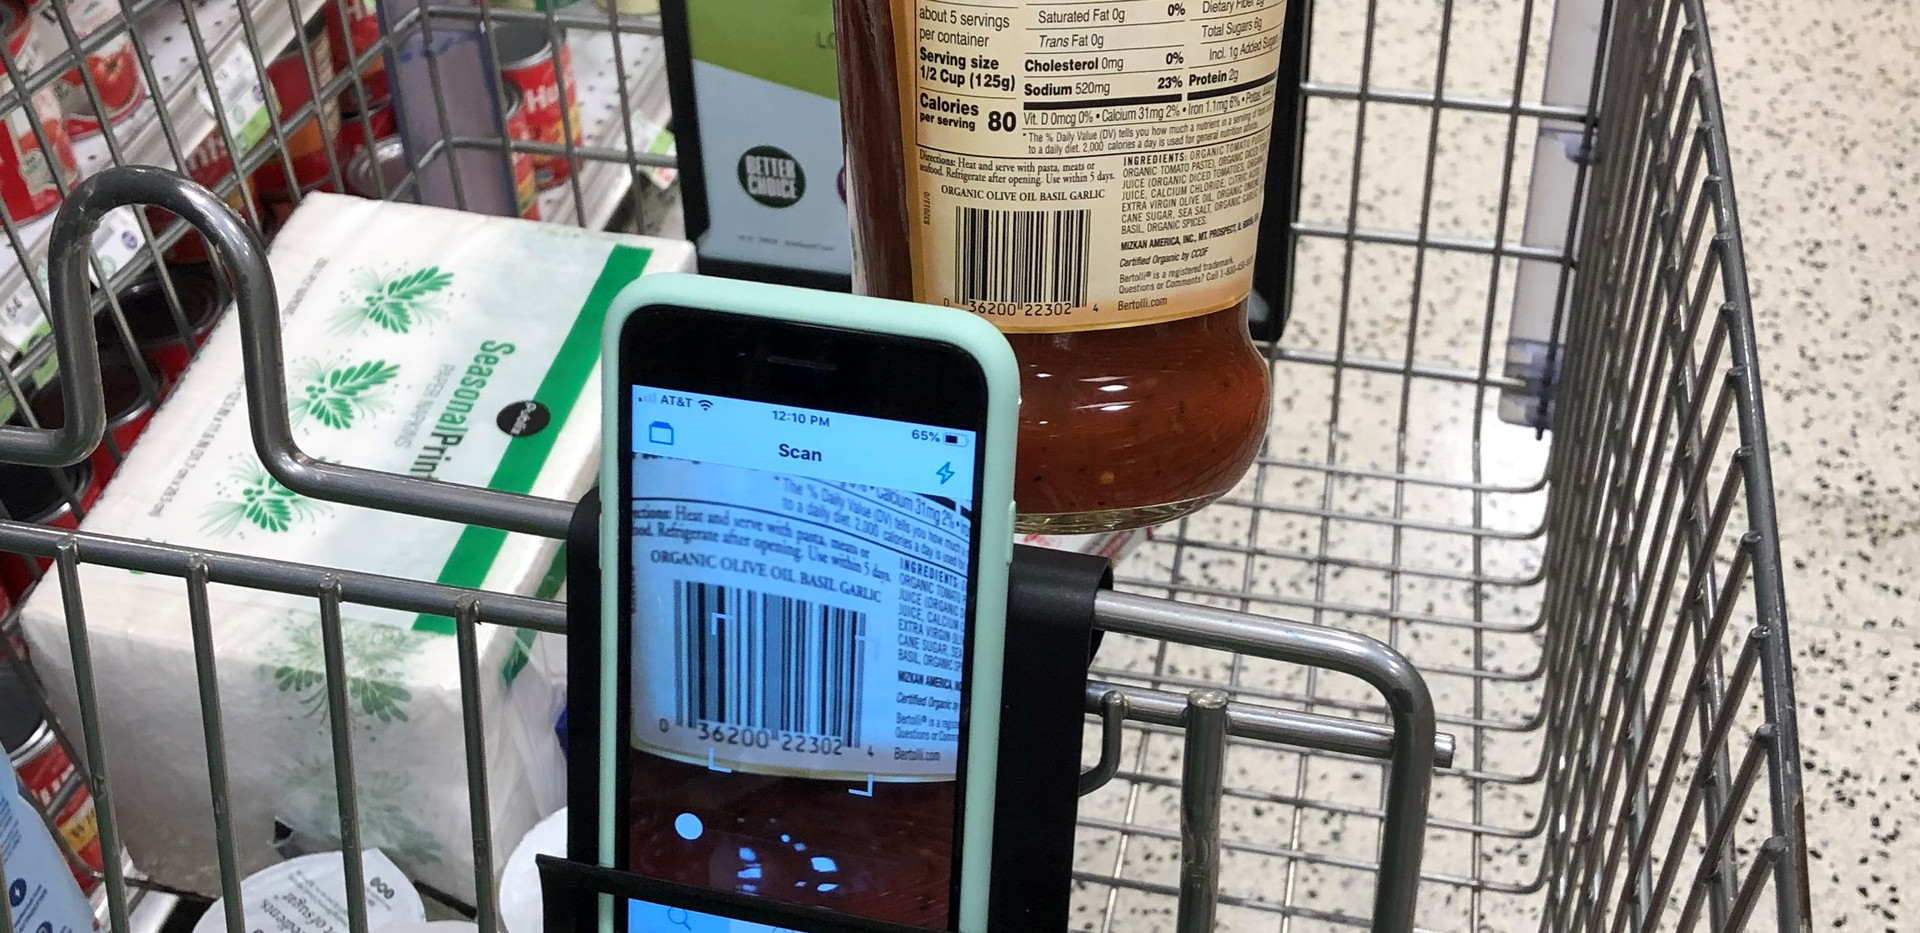 Cell Phone Holder for Shopping Cart - Cart Phone Caddy